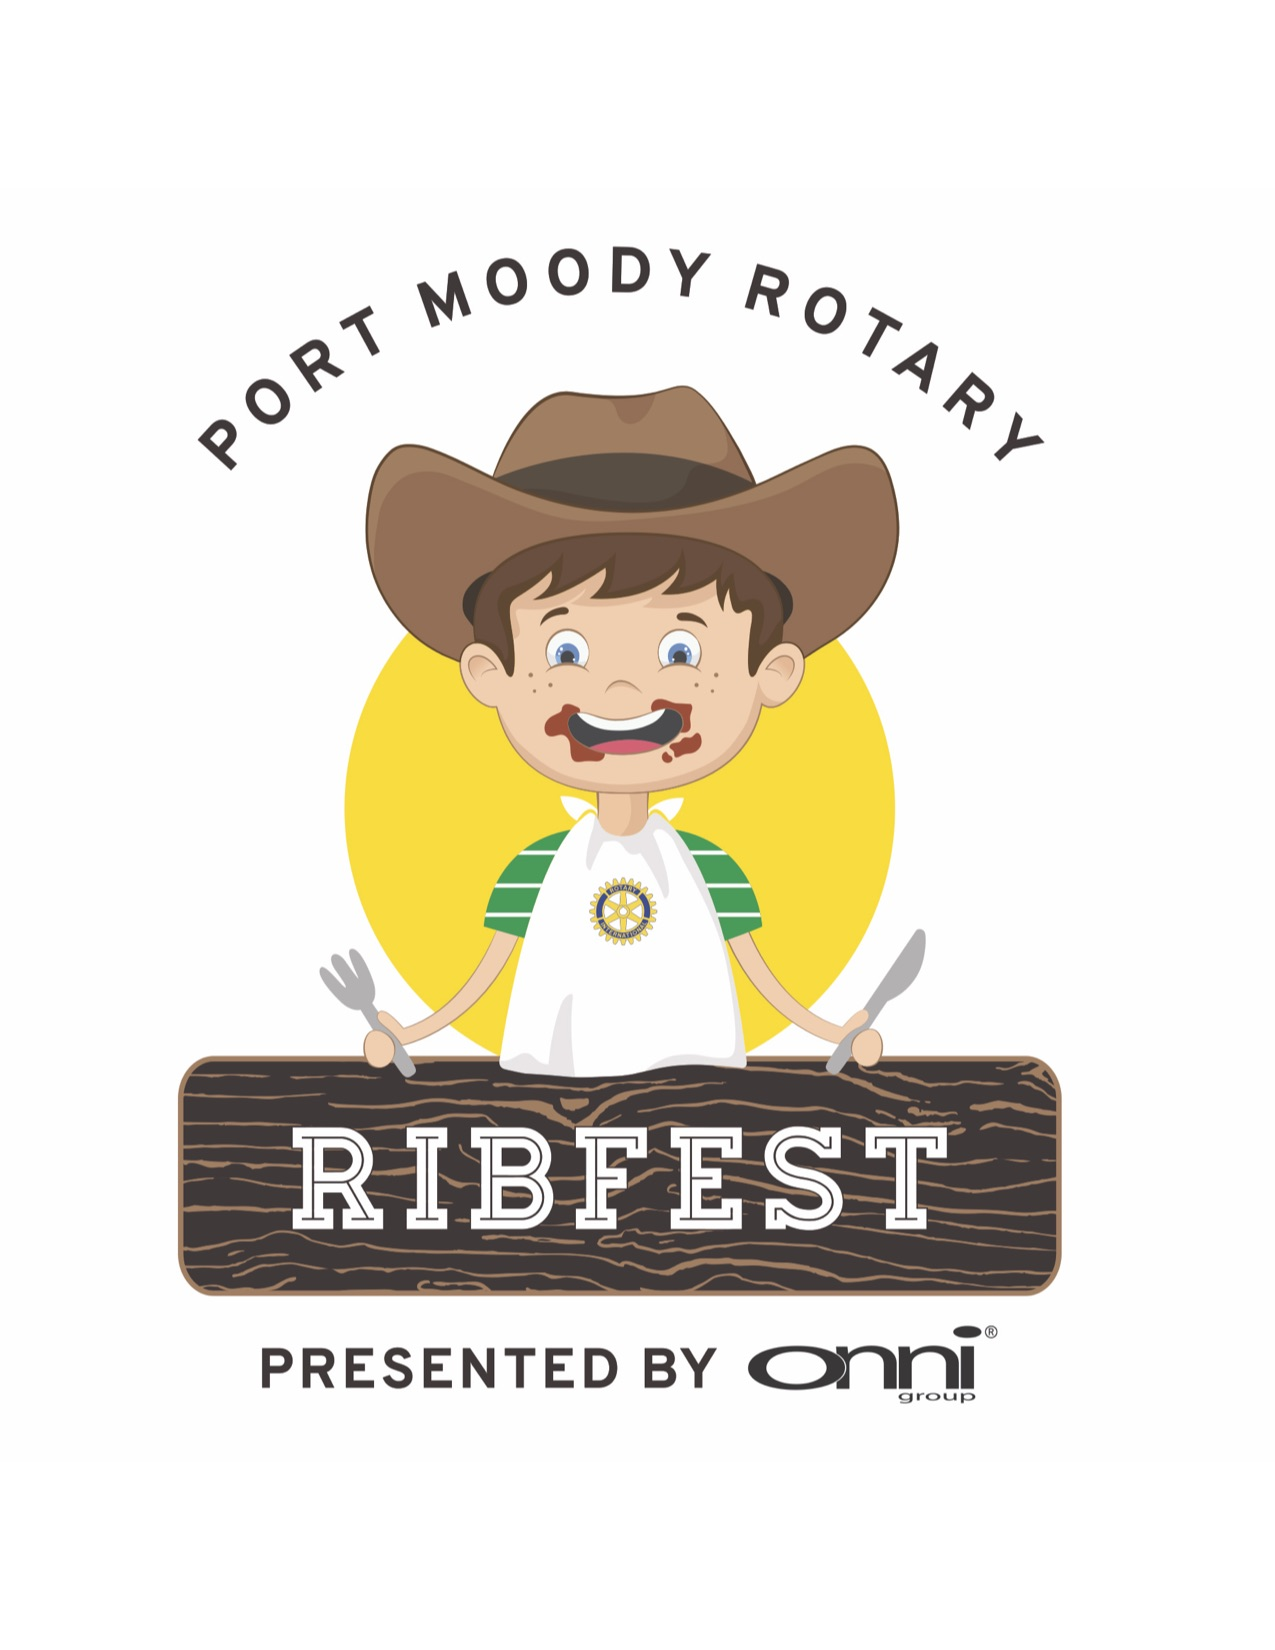 38f4abd9f6d8b Wear your RIBFEST shirt this Wednesday as our whole meeting will be about  Port Moody Rotary RIBFEST 2019.